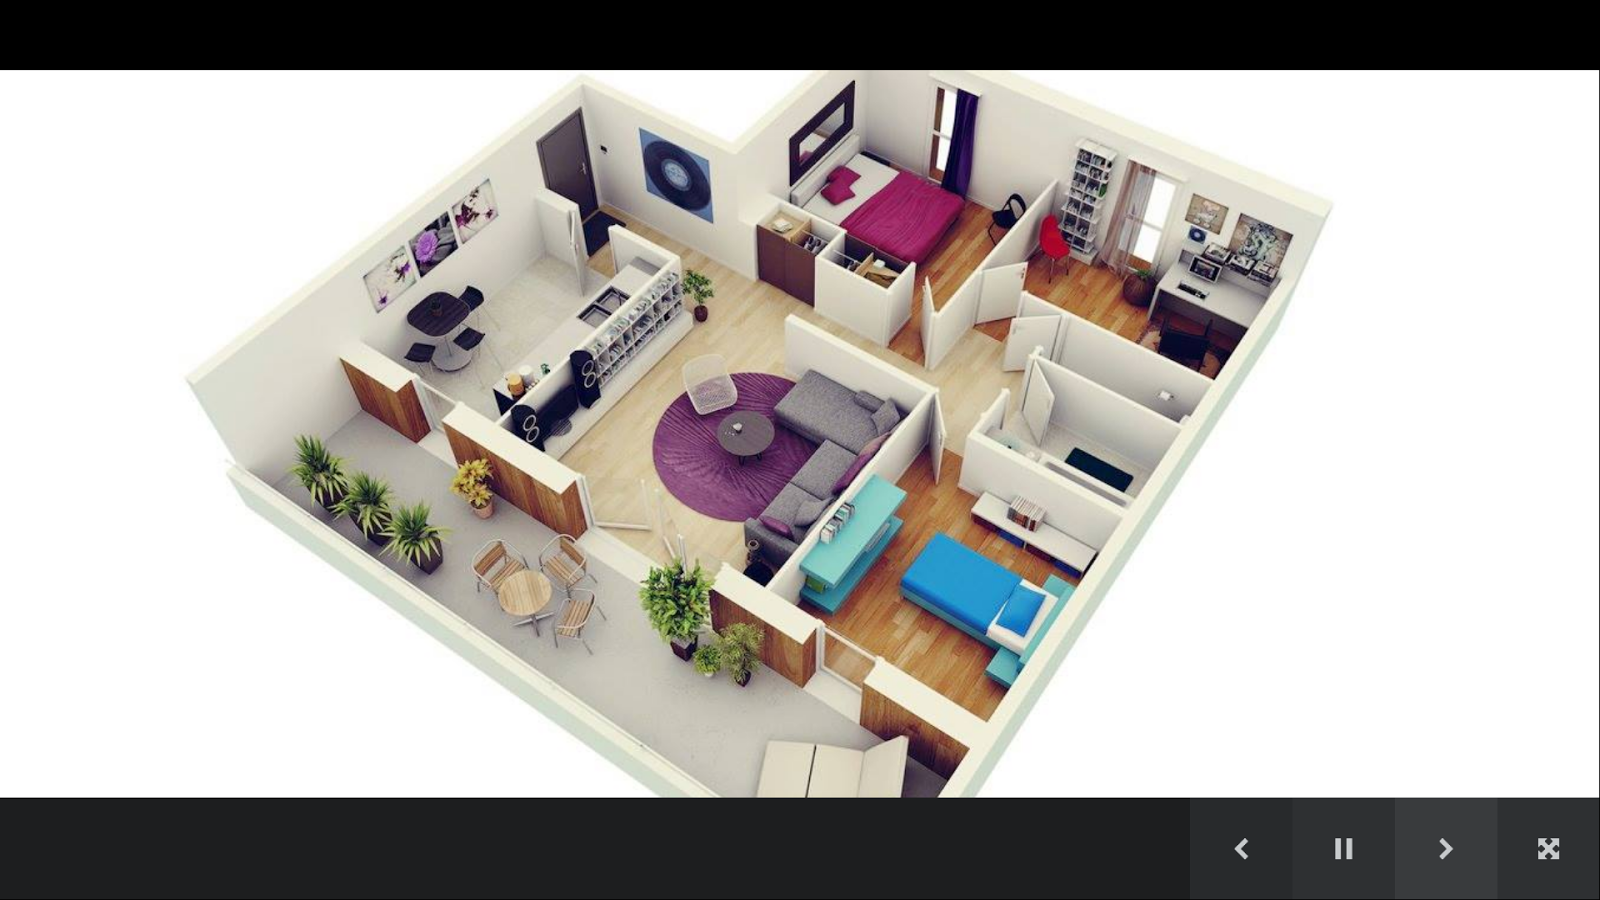 3d house plans android apps on google play 3d house plans screenshot